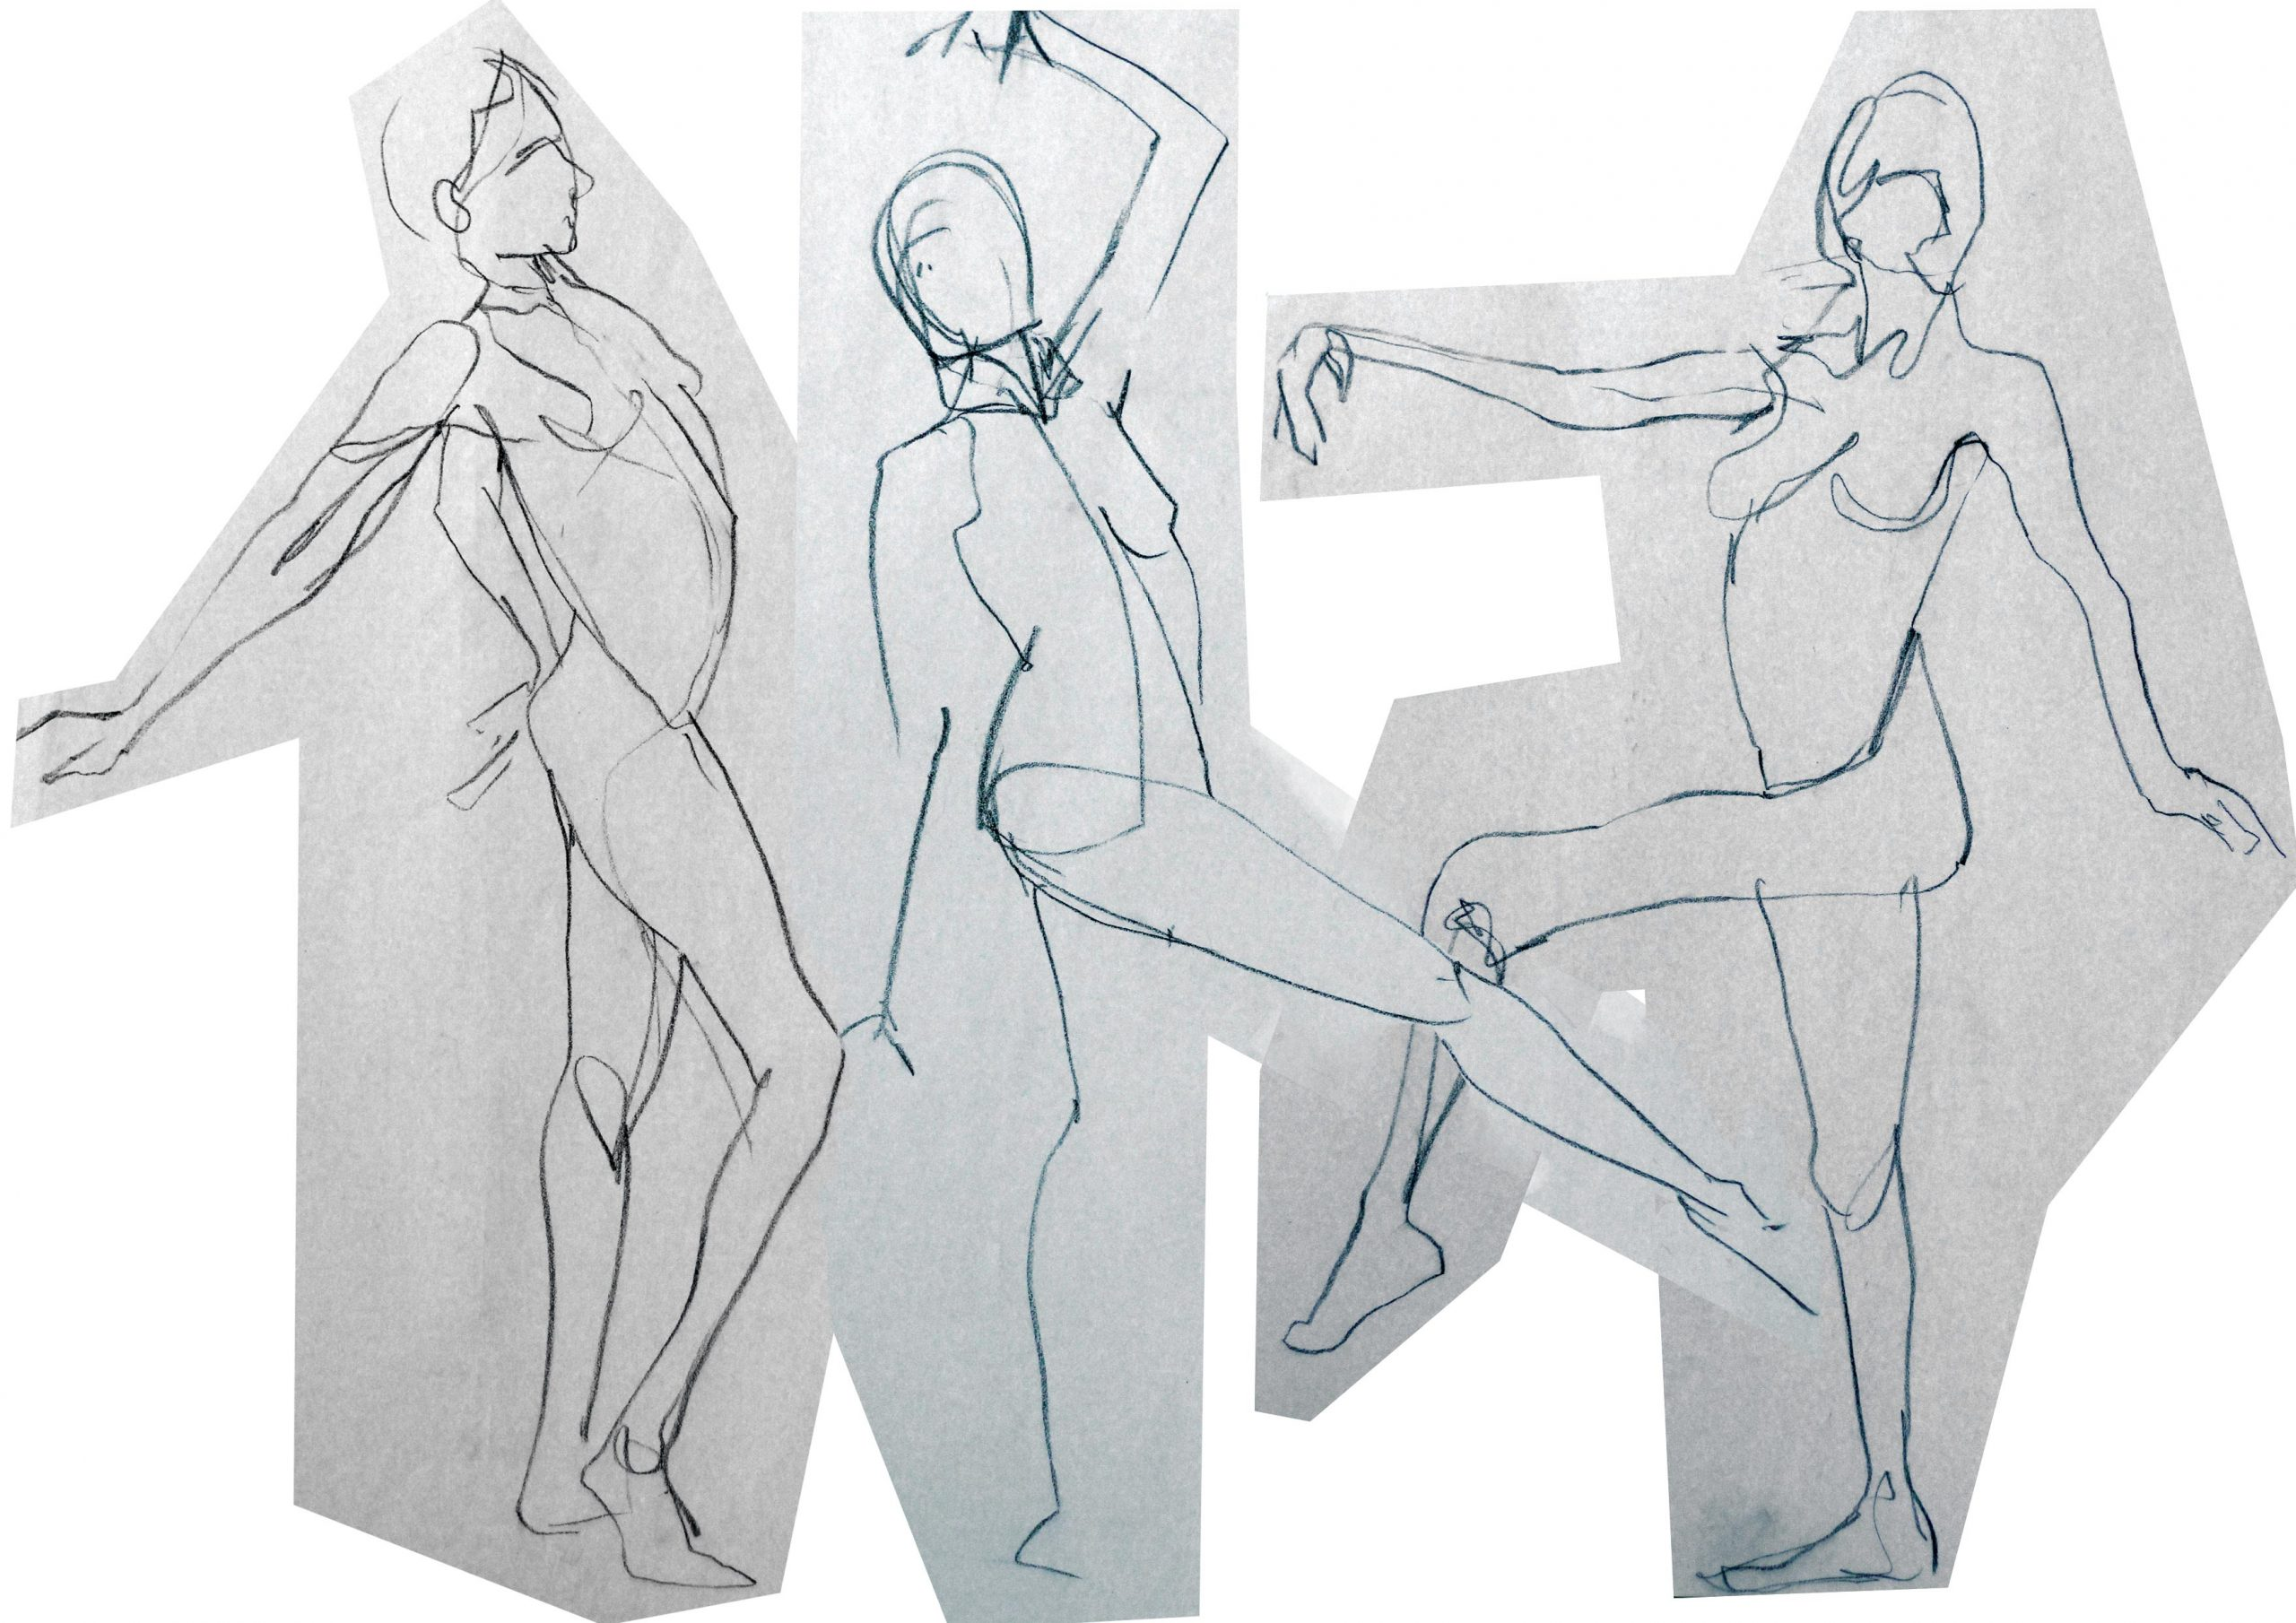 drawing three figures dancing